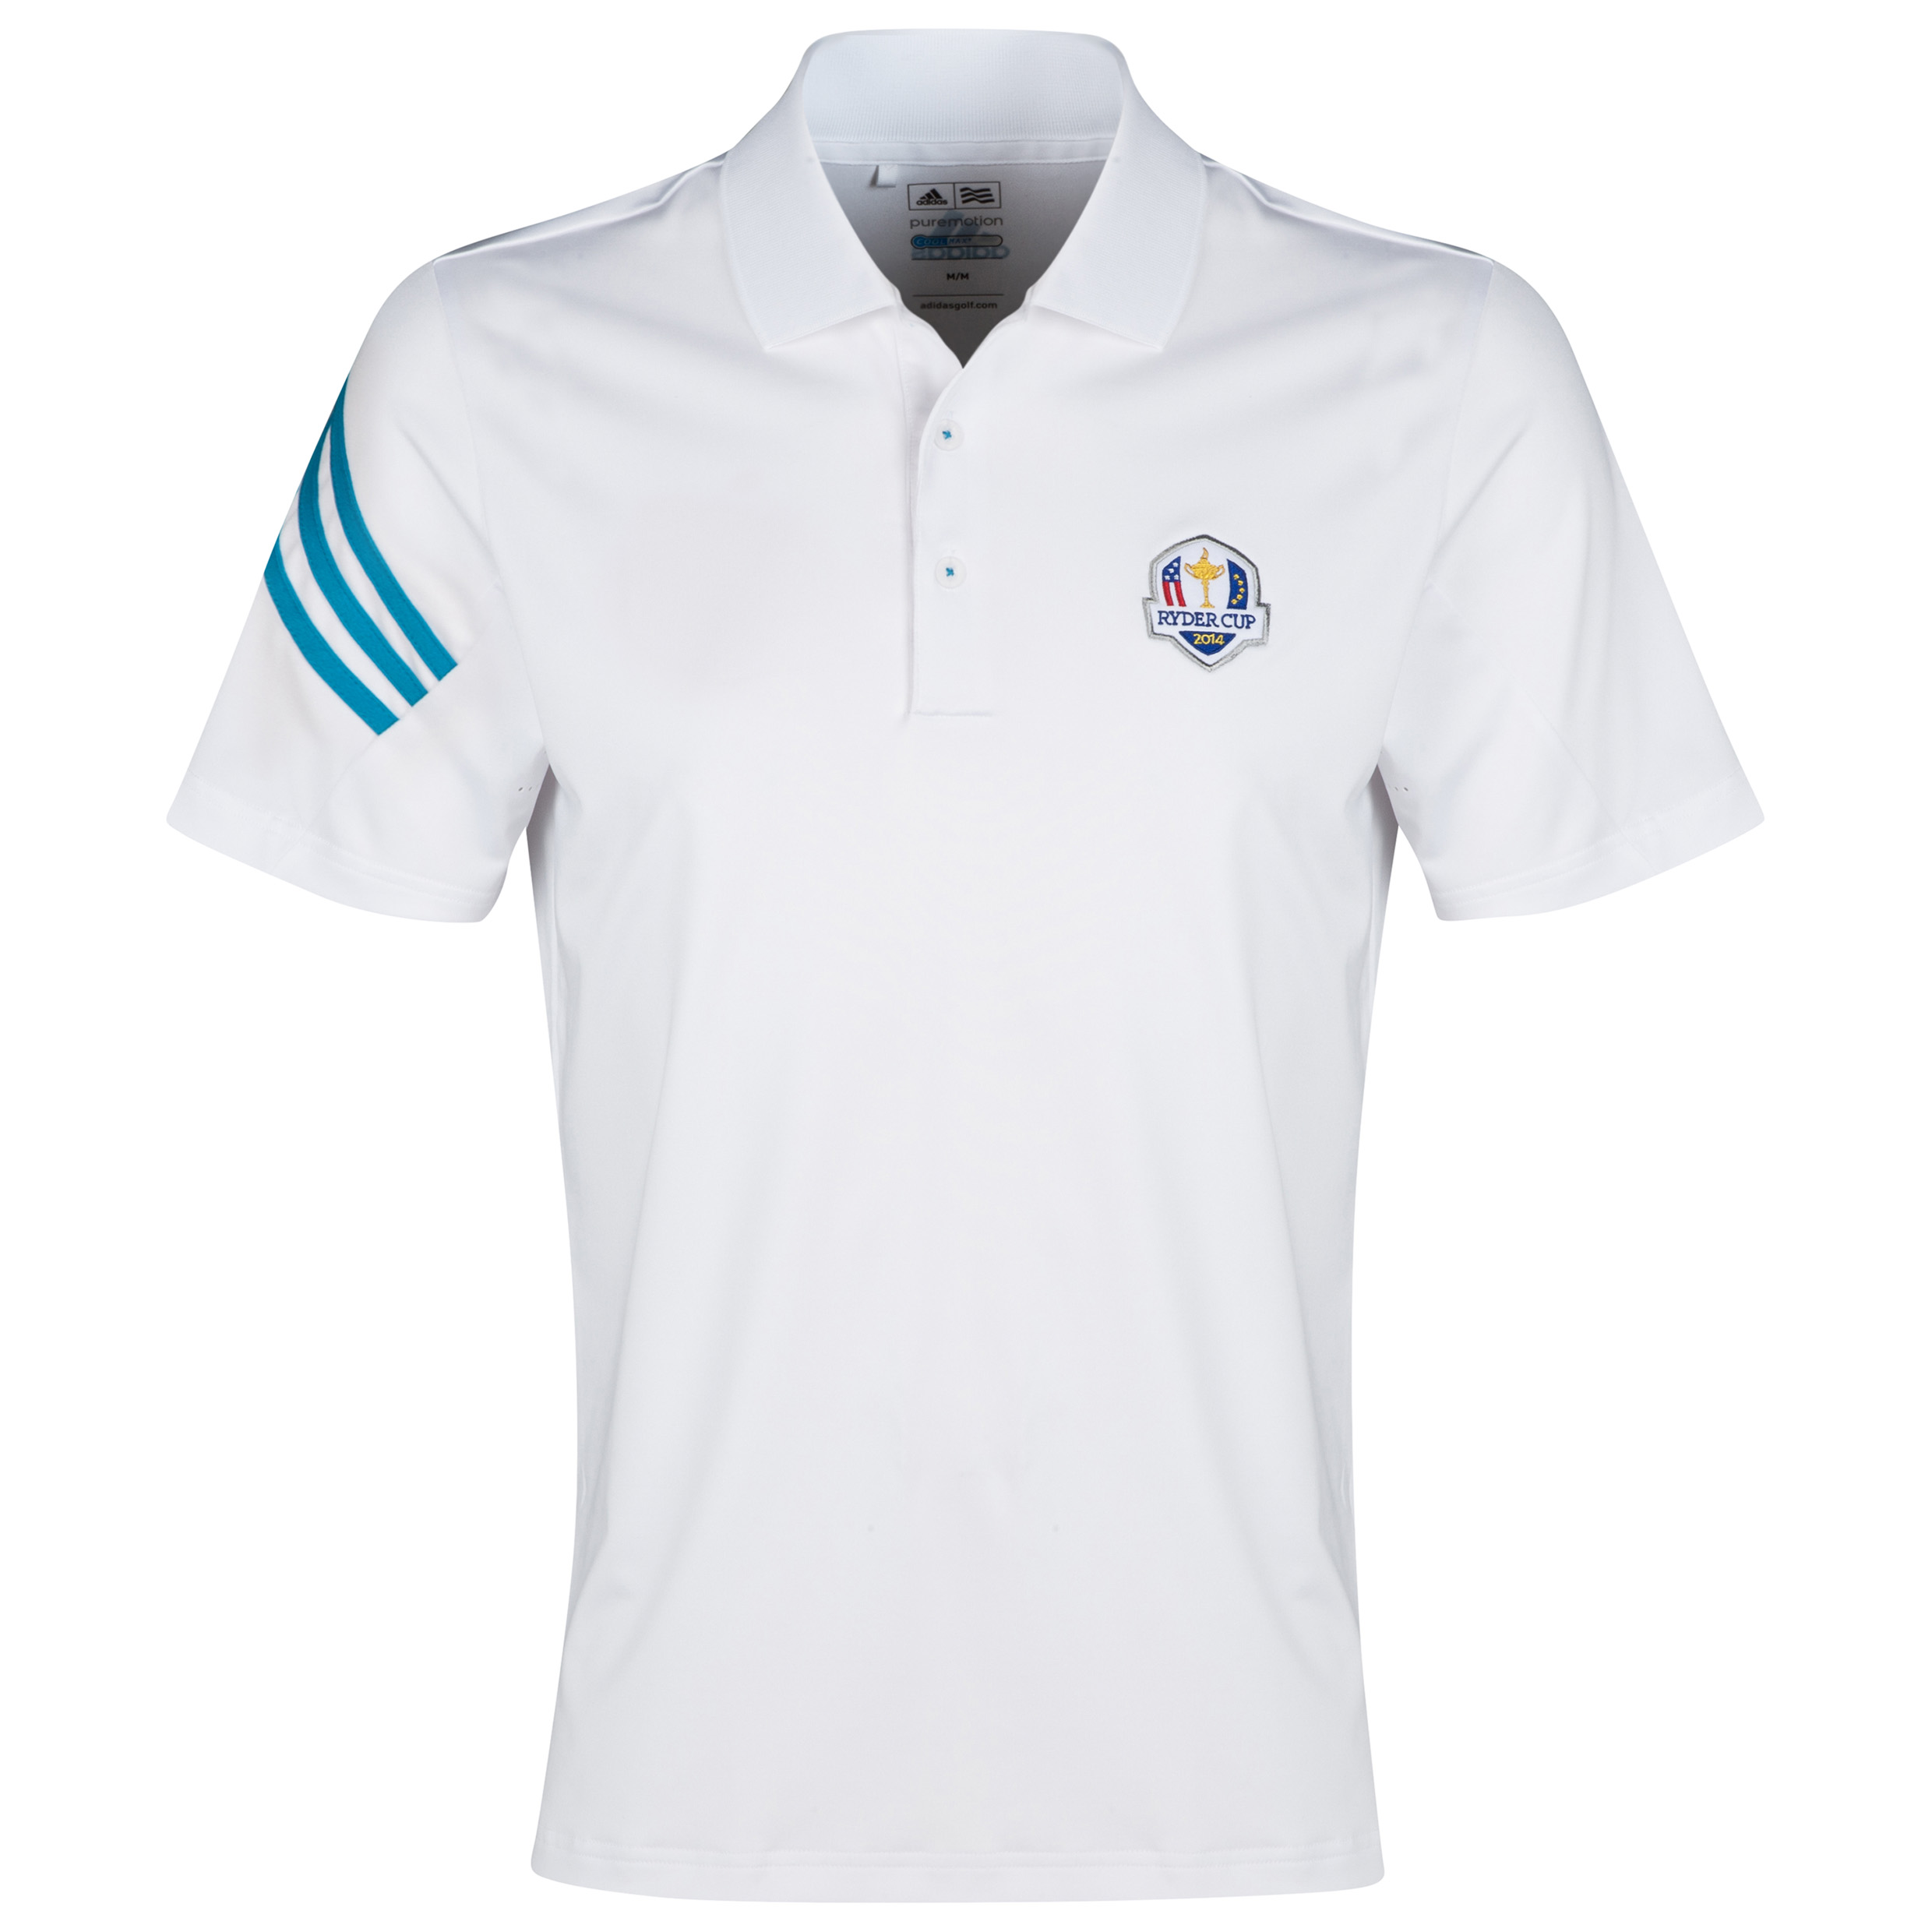 The 2014 Ryder Cup ClimaLite 3-Stripes Polo White